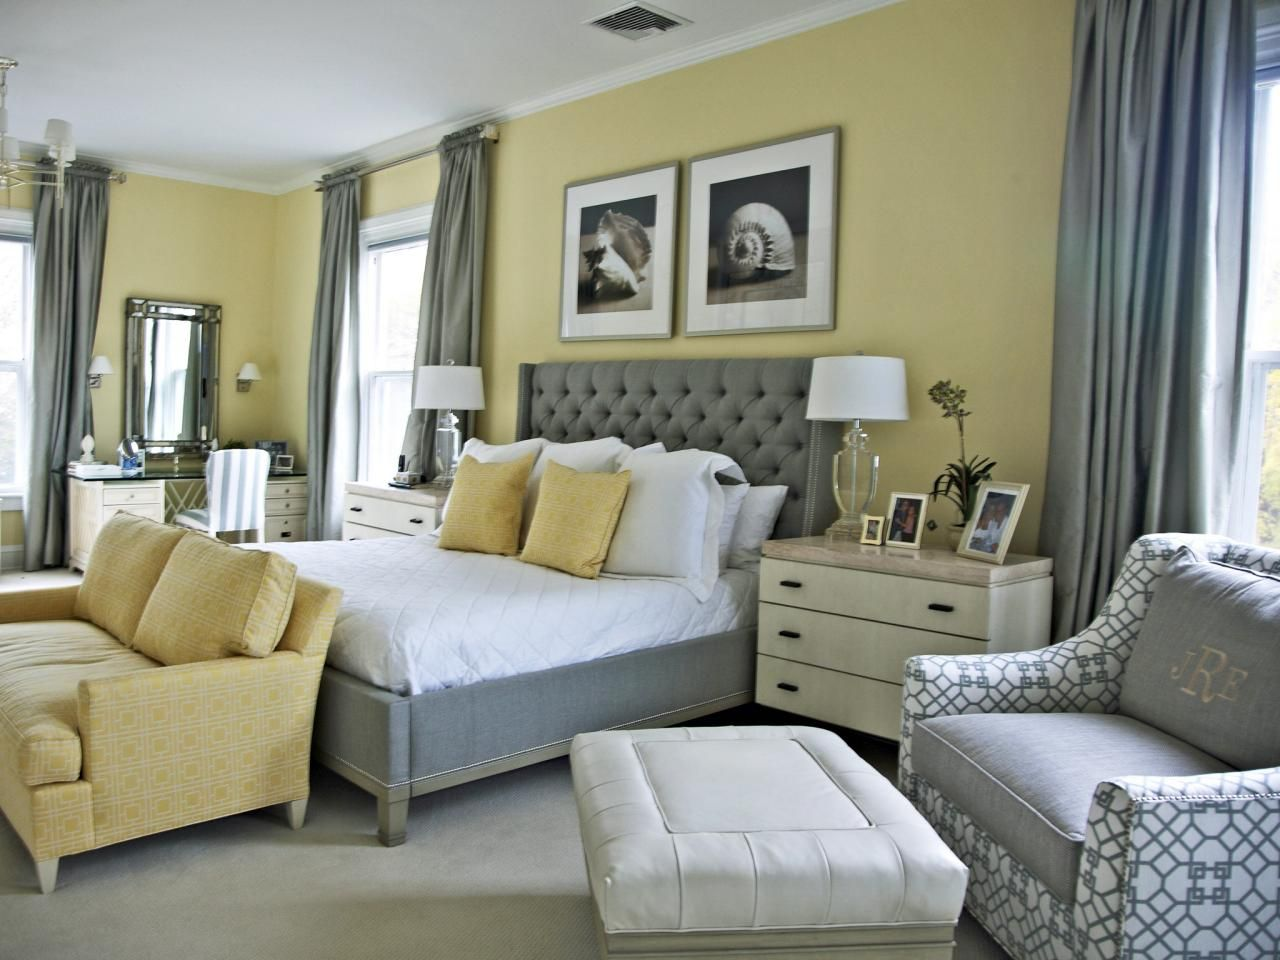 Guest Bedroom Gray White And Yellow Guest Bedroom Stylish Bedroom Remodel Bedroom Bedroom Design